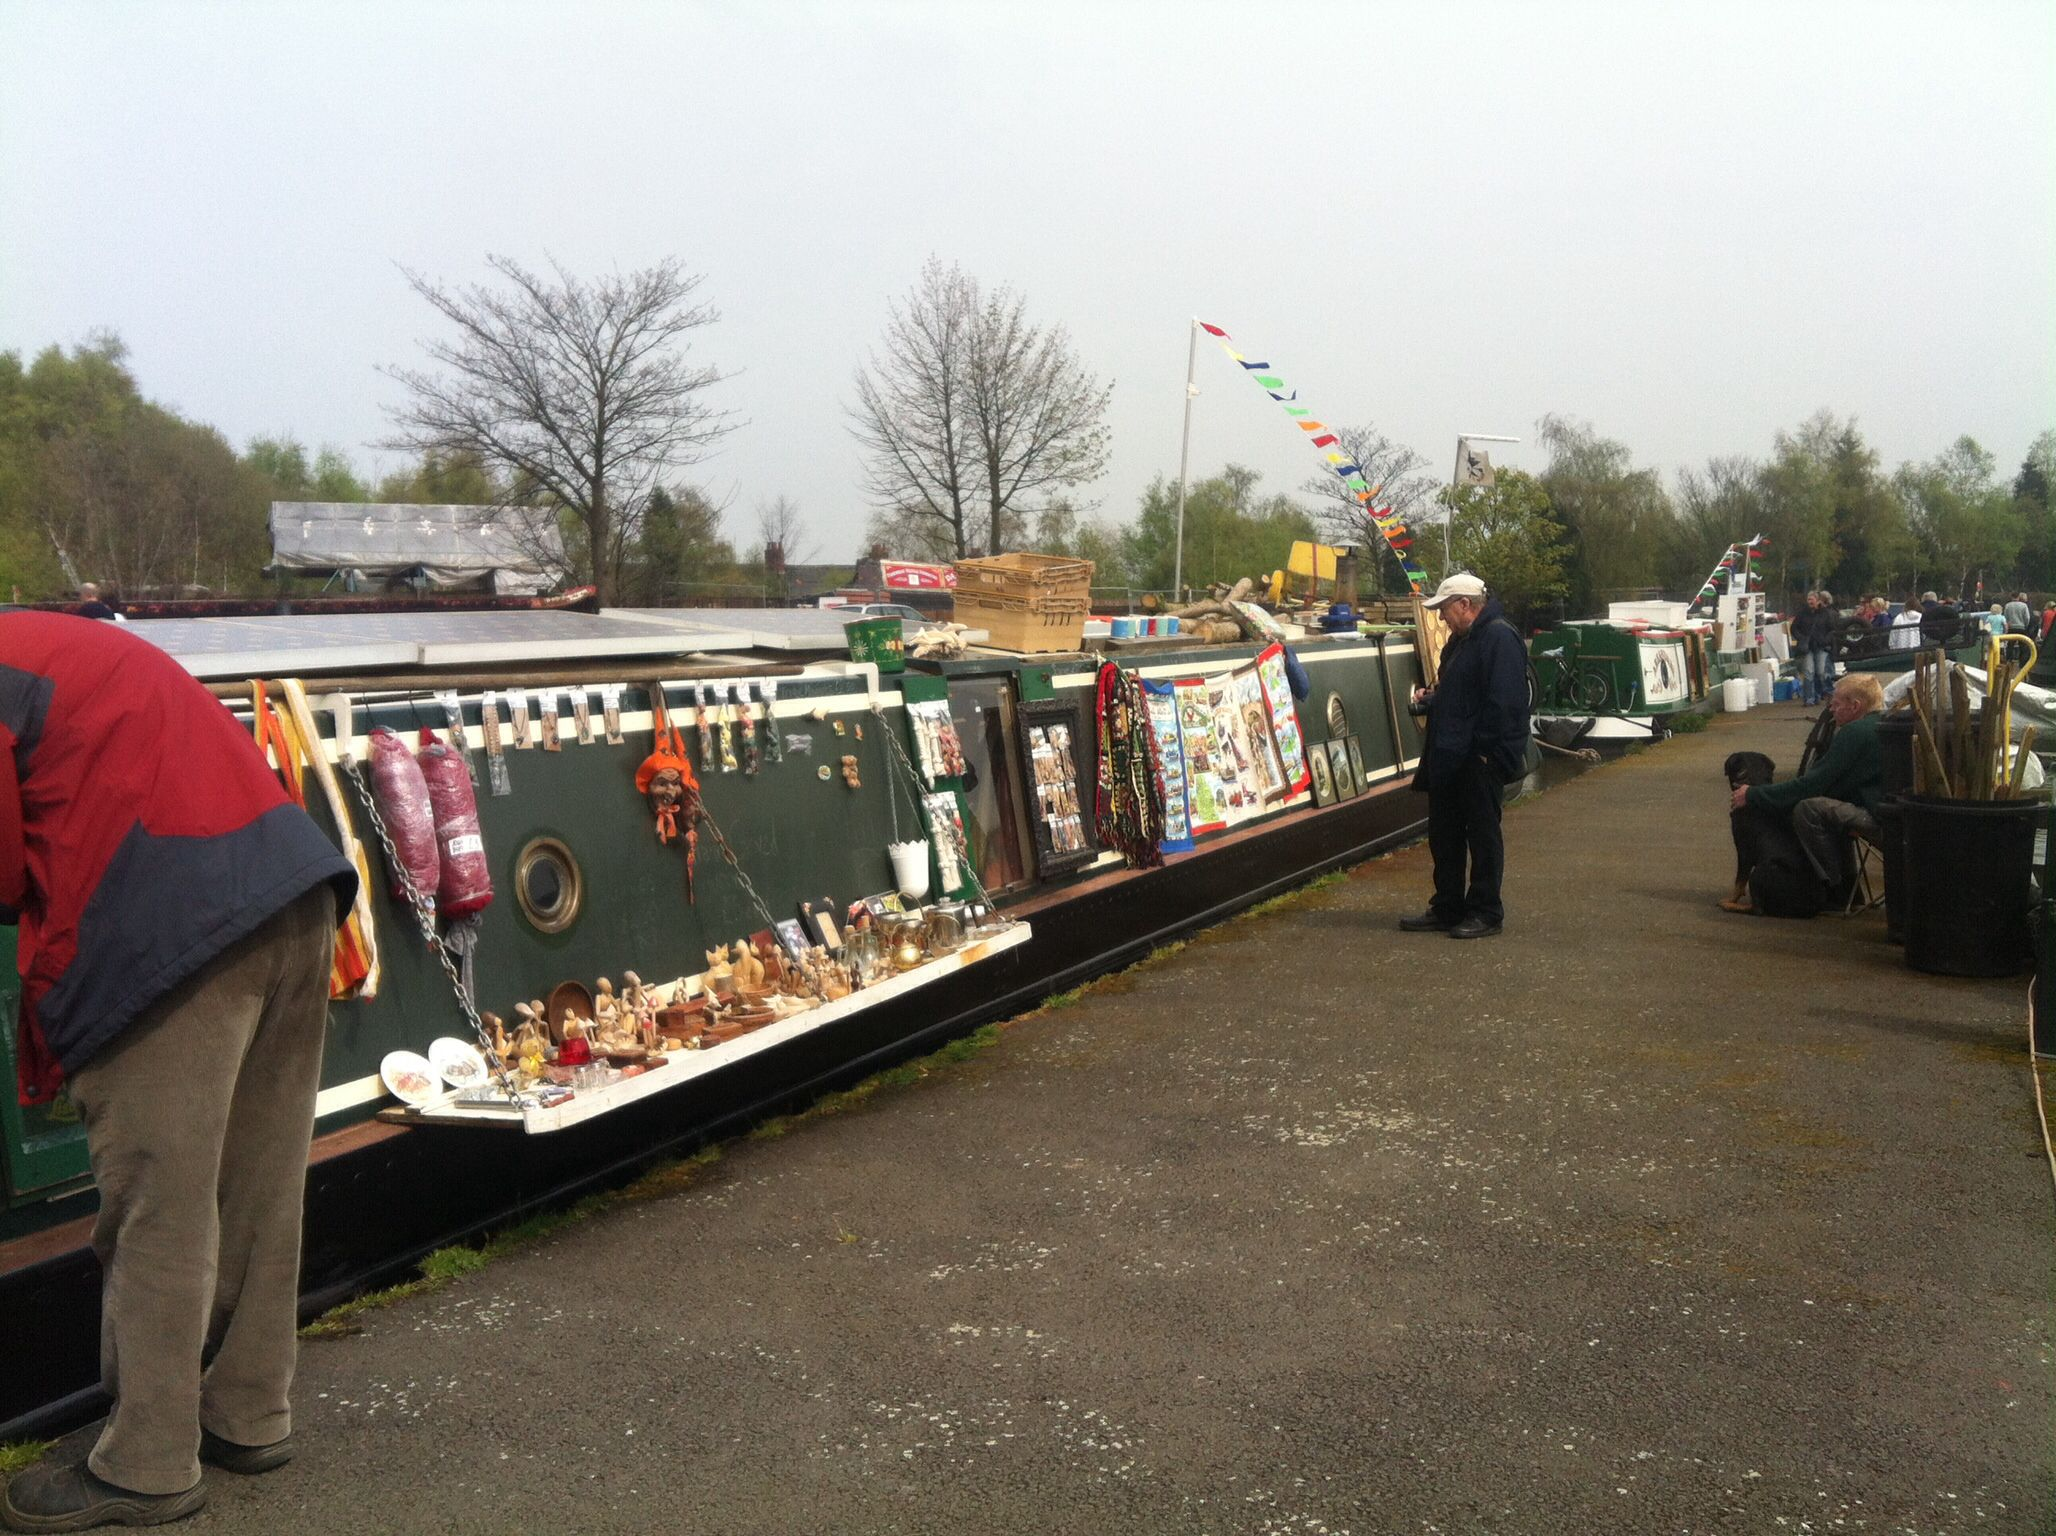 Alvecote Marina at Easter - Brrrrr it was chilly!!!